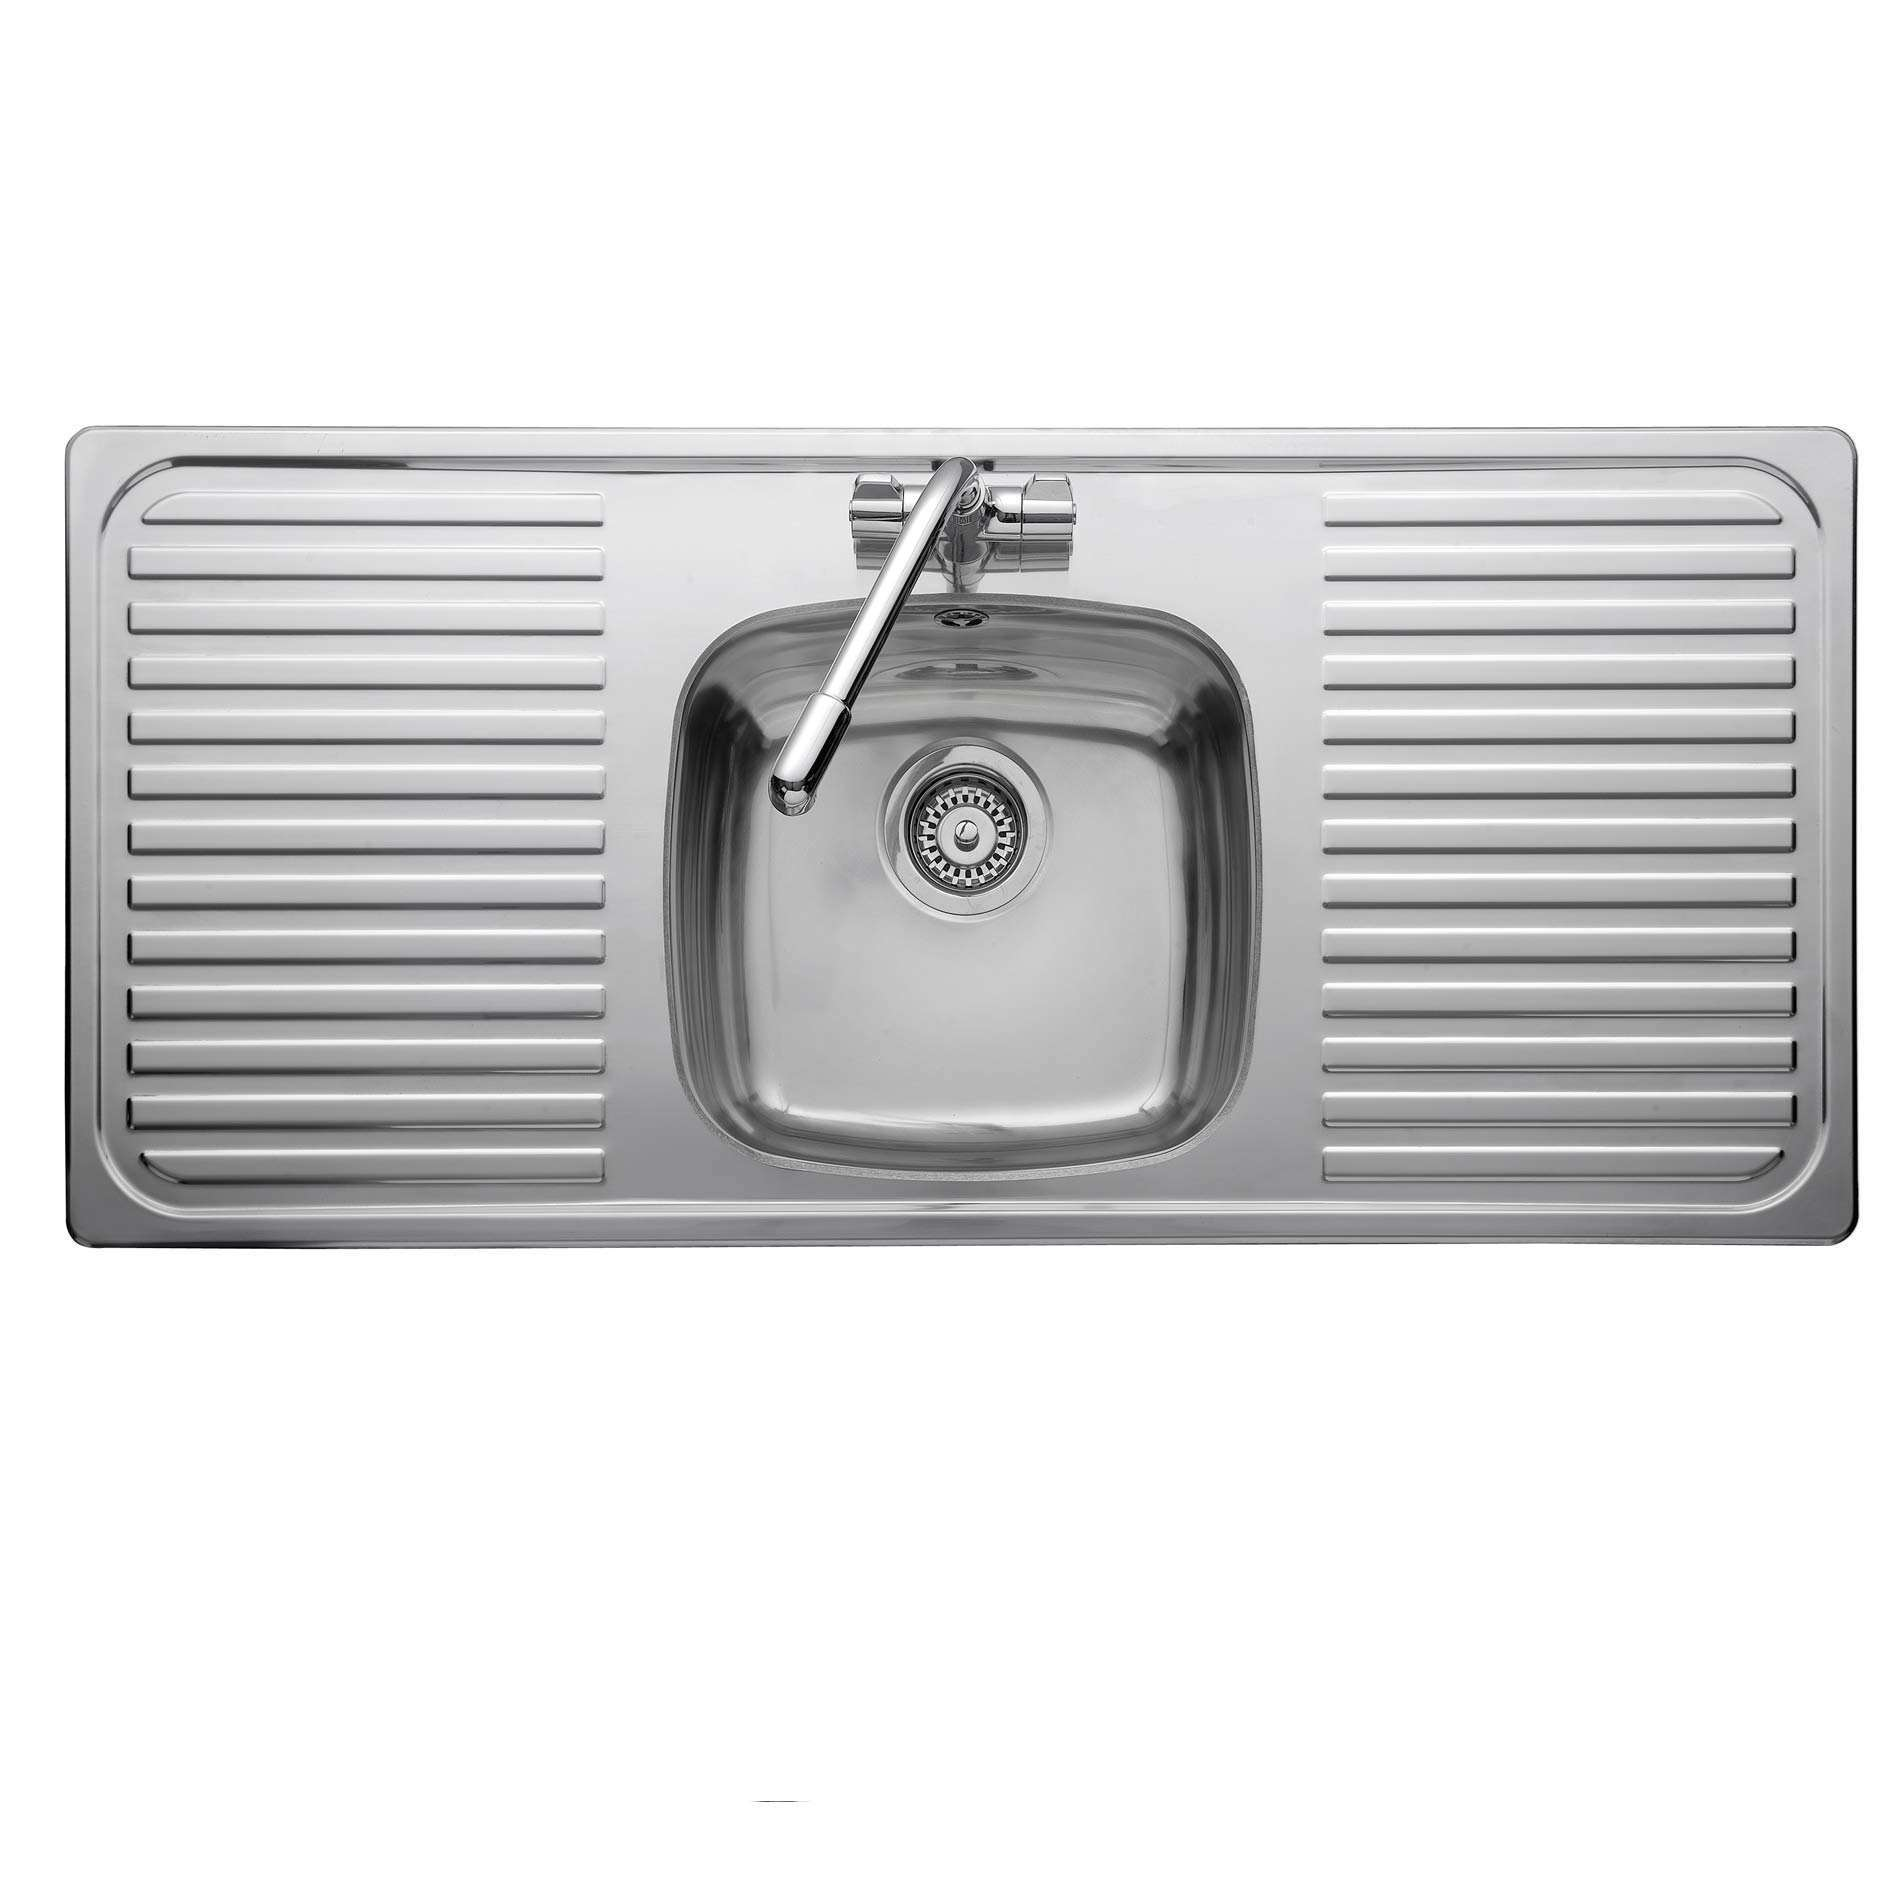 Leisure: Linear LR11601TH Stainless Steel Sink - Kitchen Sinks & Taps